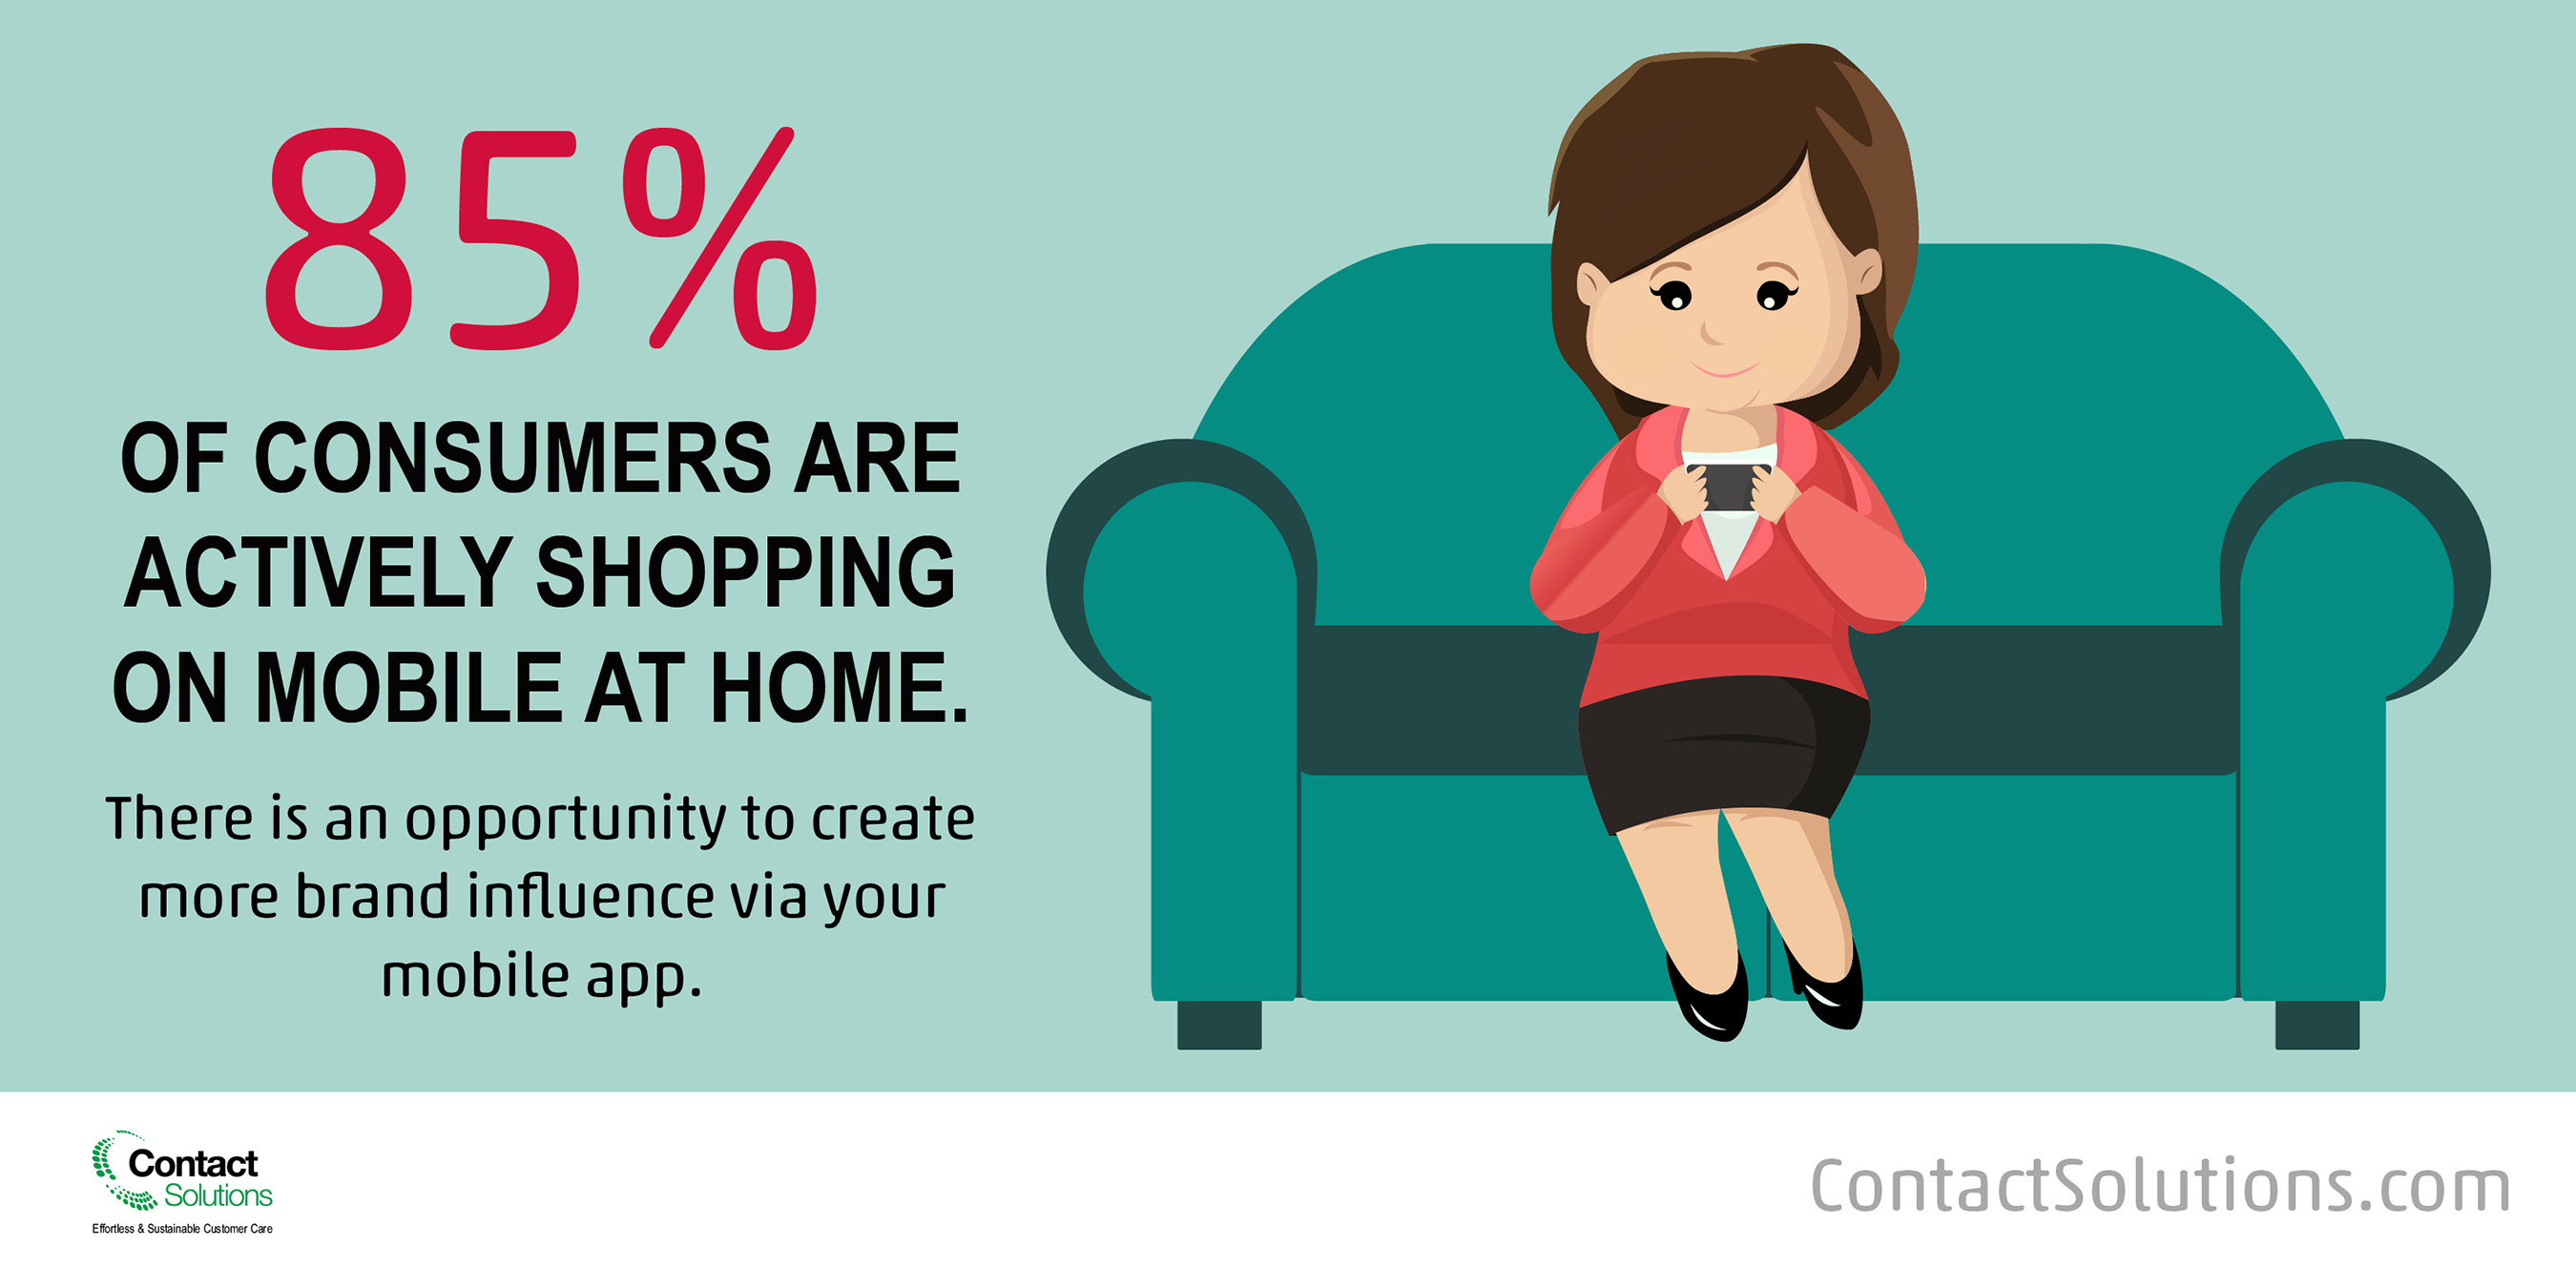 85 percent of consumers are actively shopping on mobile at home.